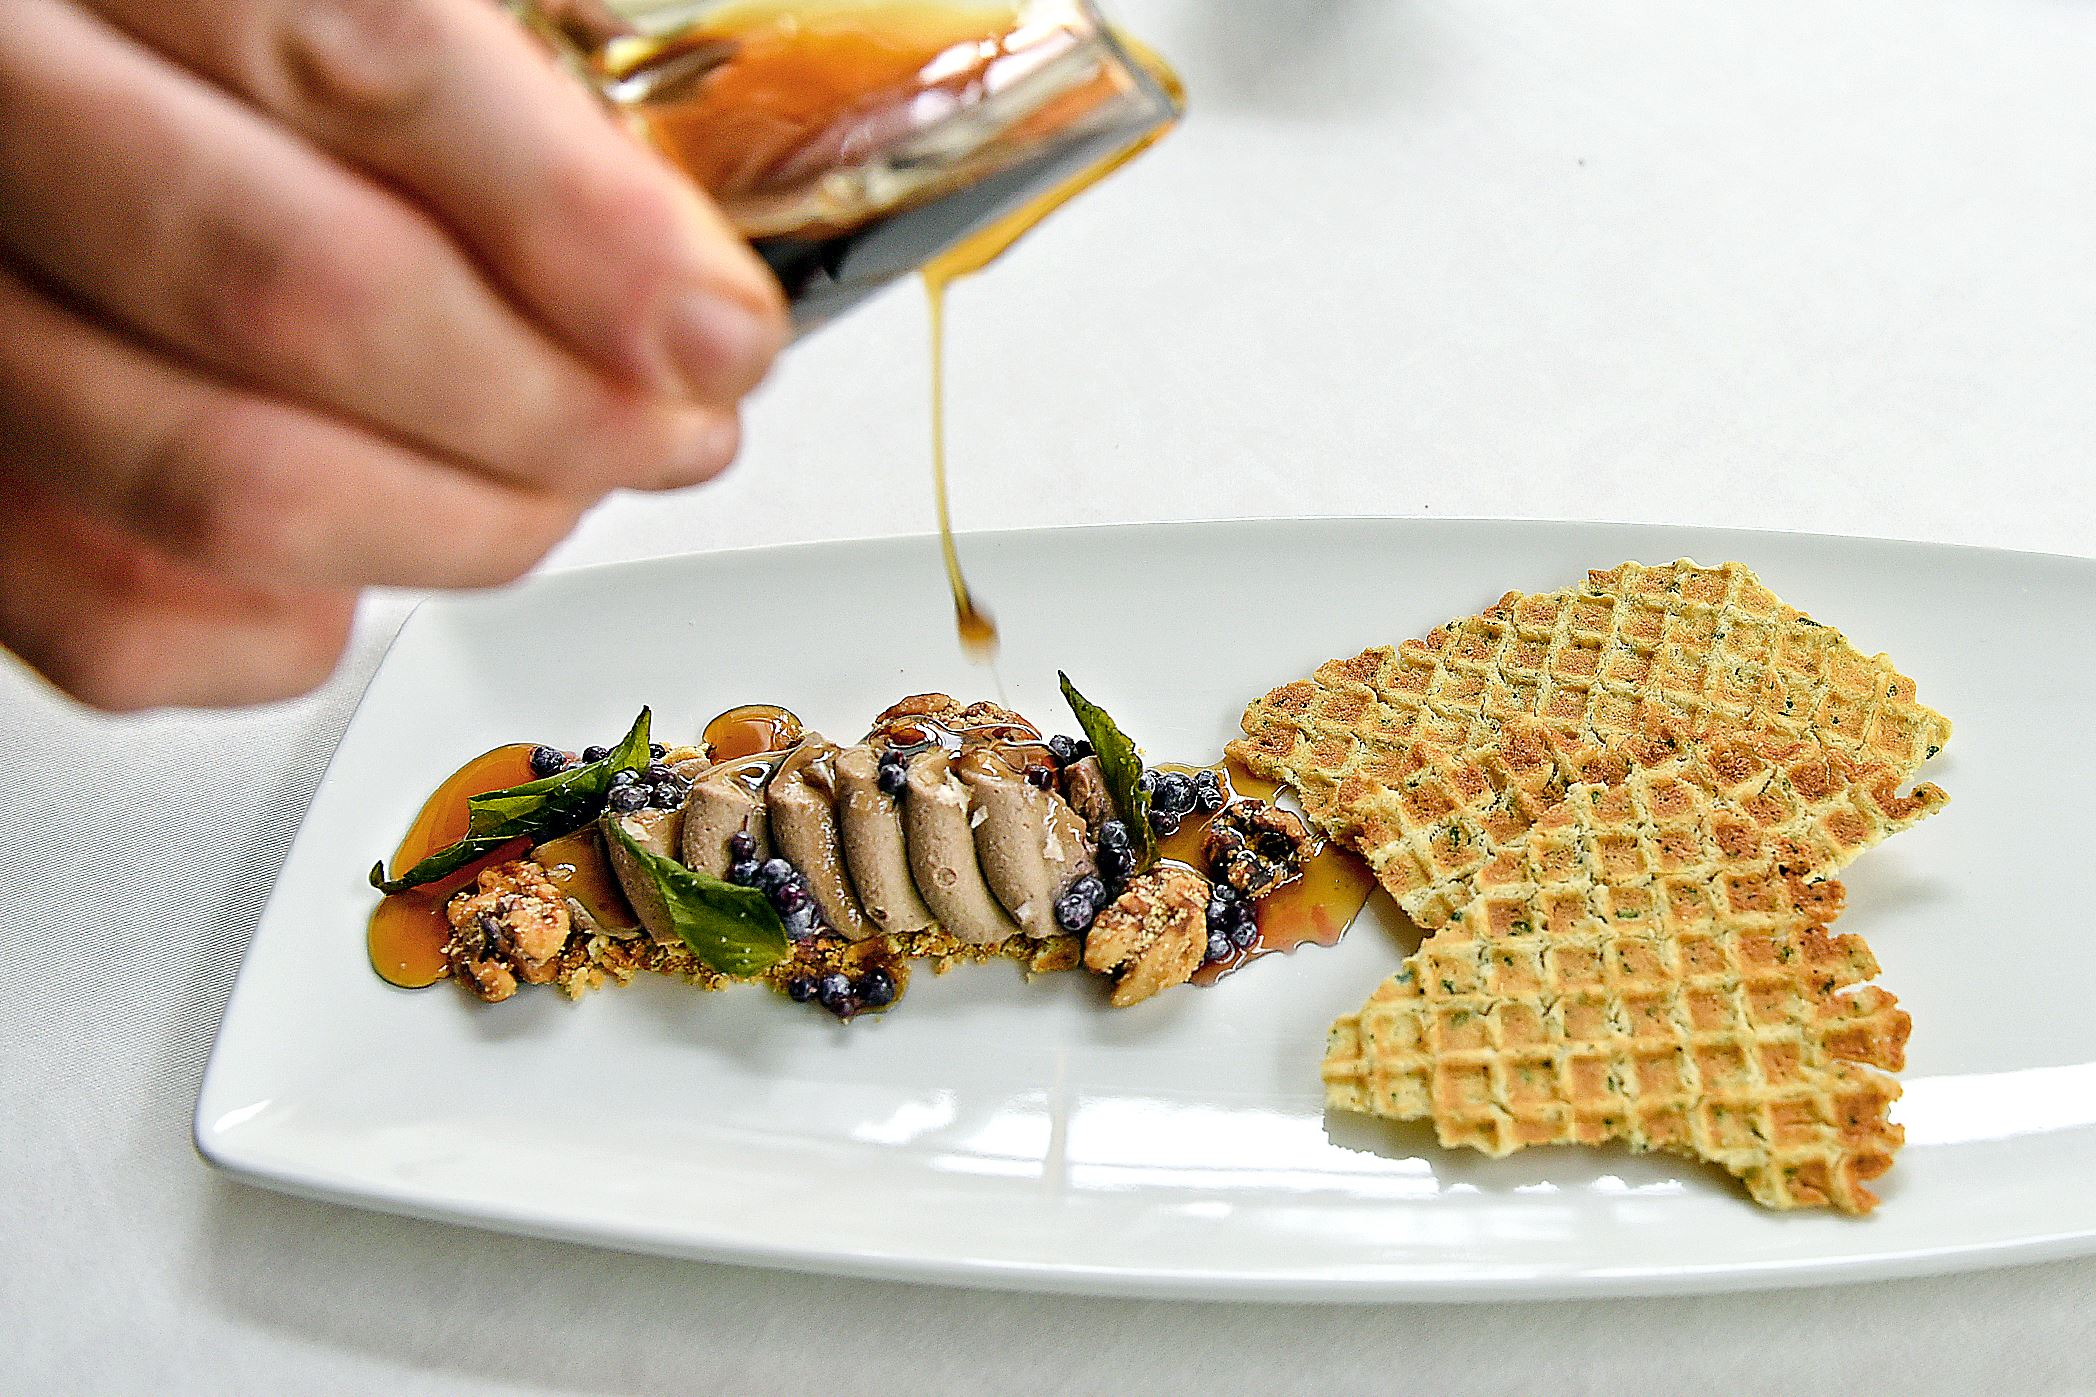 20150910radButterworthMag04-3 Bourbon barrel aged maple syrup drips down on Kristin Butterworth's chicken and waffles served at Lautrec at Nemacolin Woodlands Resort. The dish features chicken liver pate with vanilla scented elderberry, honey walnuts, rosemary waffle, sage and sea salt.